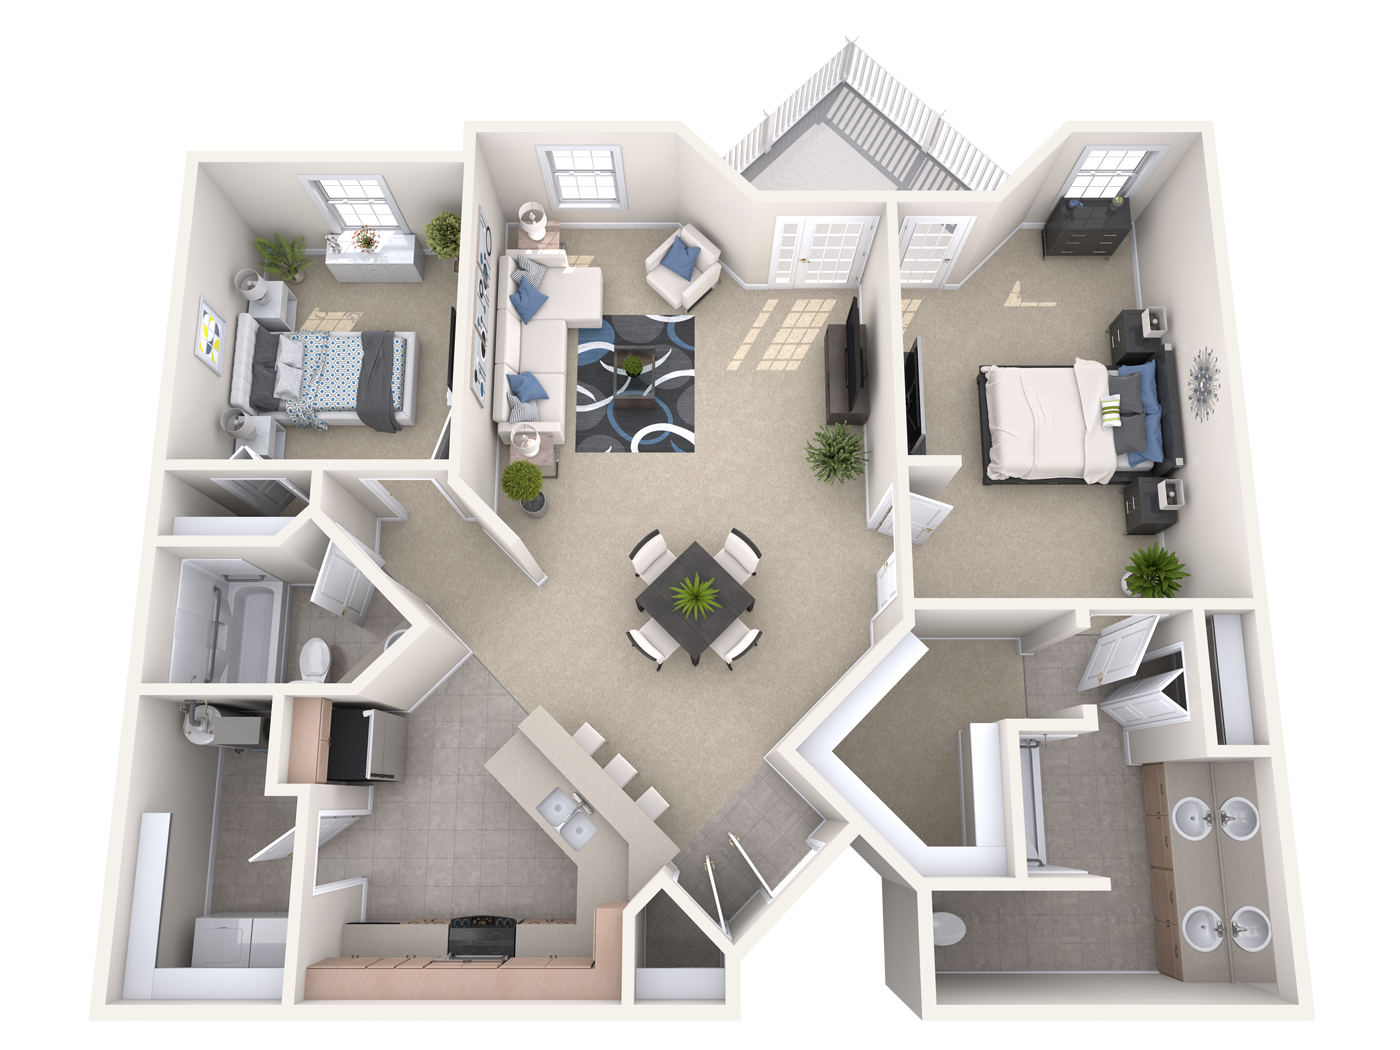 The Dilworth- two bedroom apartment at the manor